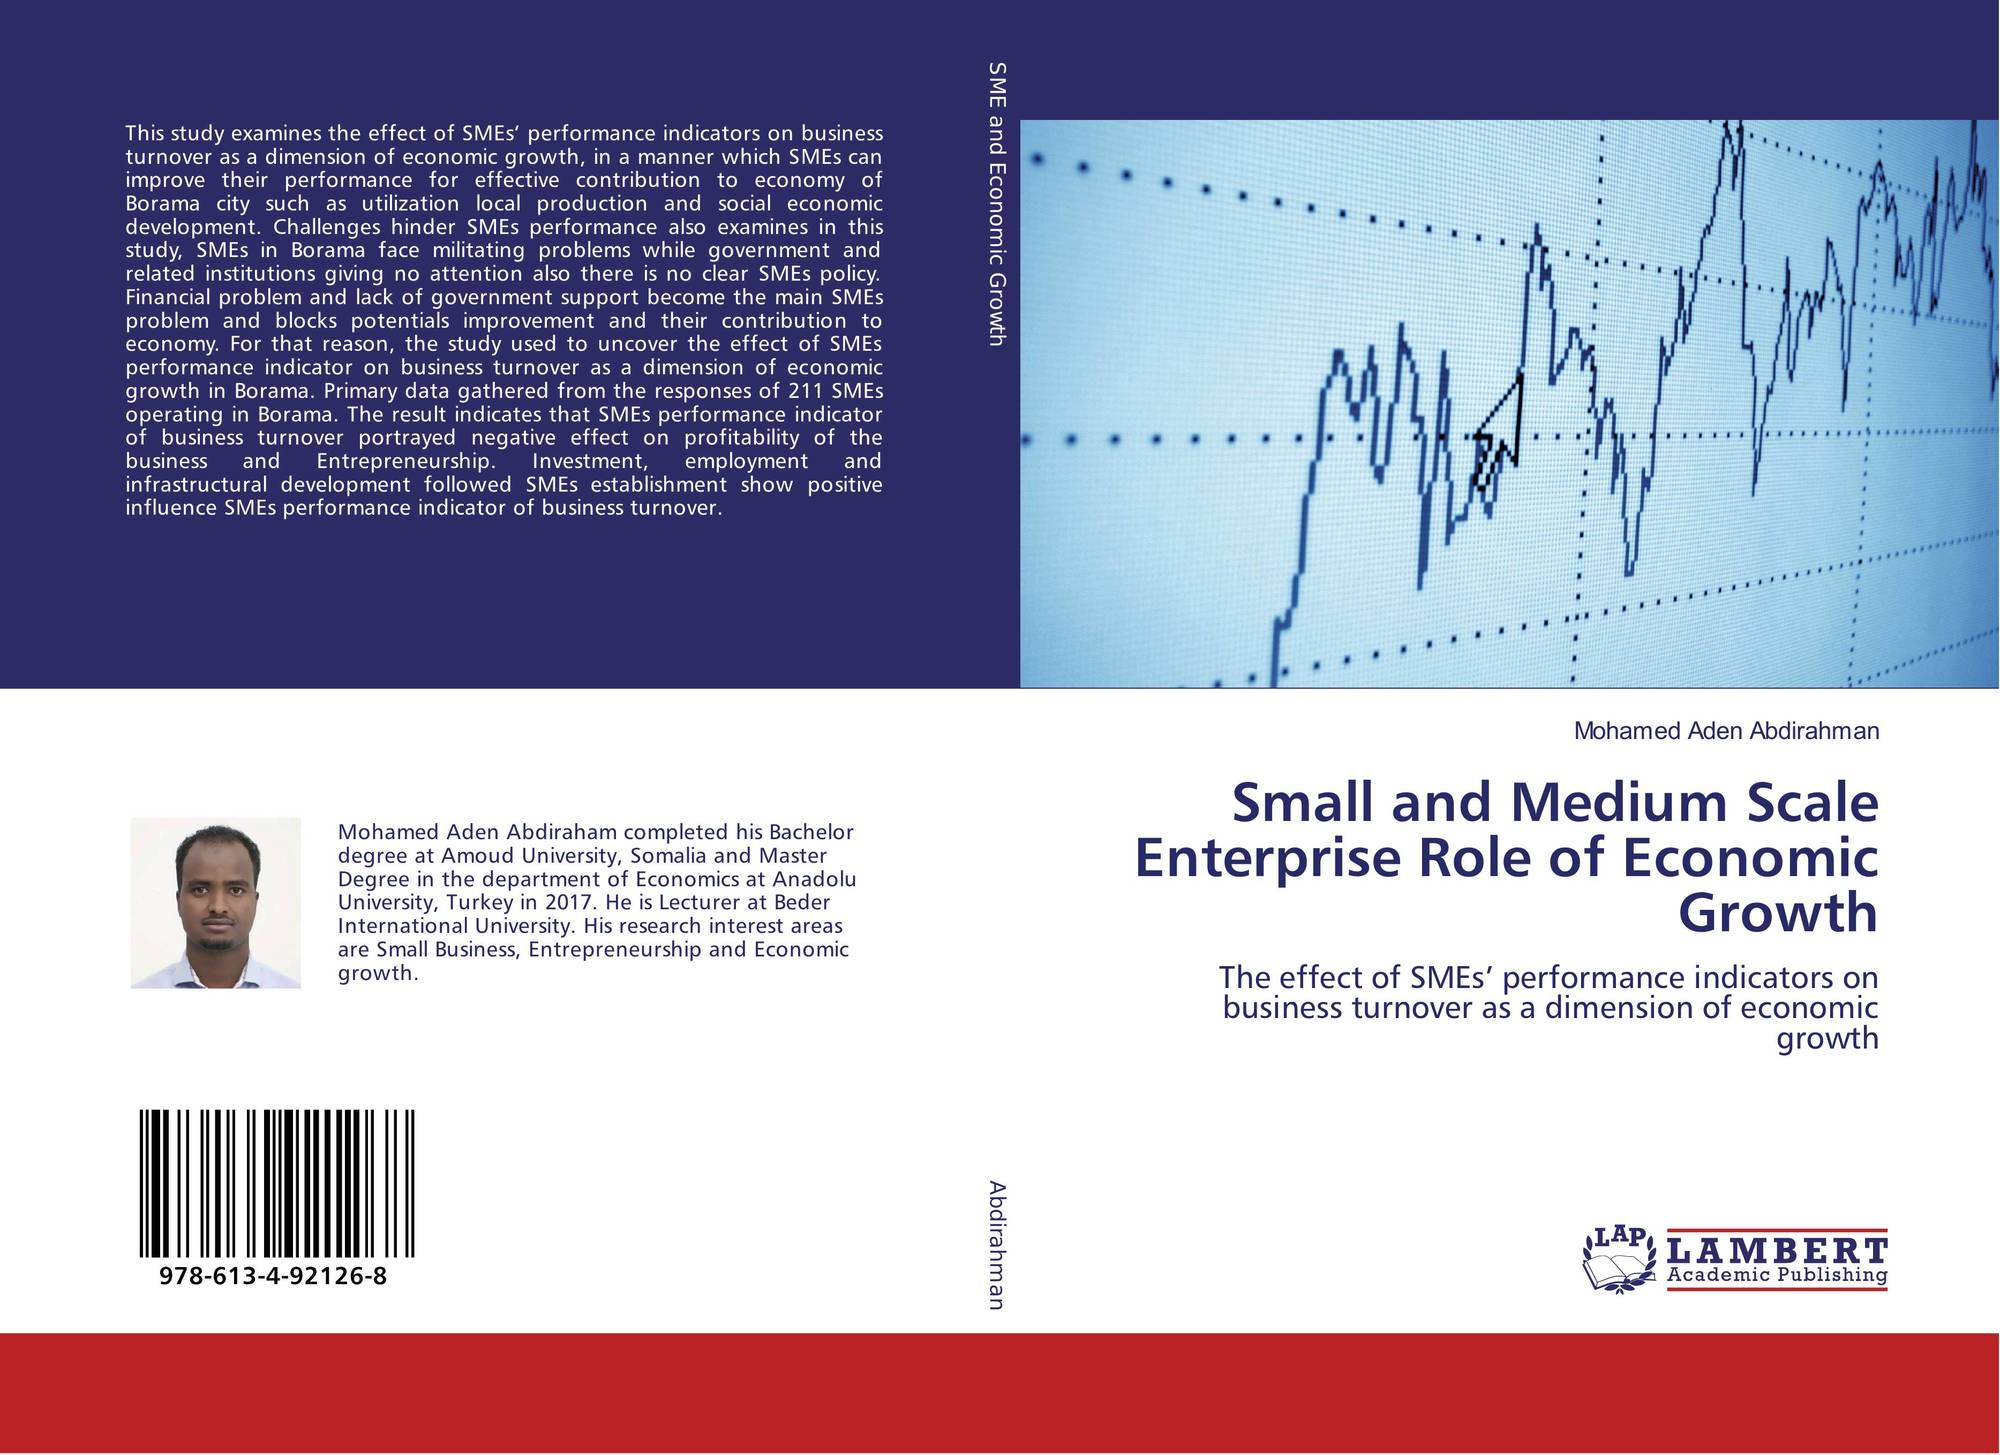 "small and medium scale enterprises in ghana commerce essay Dr ebenezer ankrah & collins christian yaw mensah ""measuring performance in small and medium scale enterprises in the manufacturing industry in ghana"" 35 international journal of research in business studies and management v2 i12 december 2015."